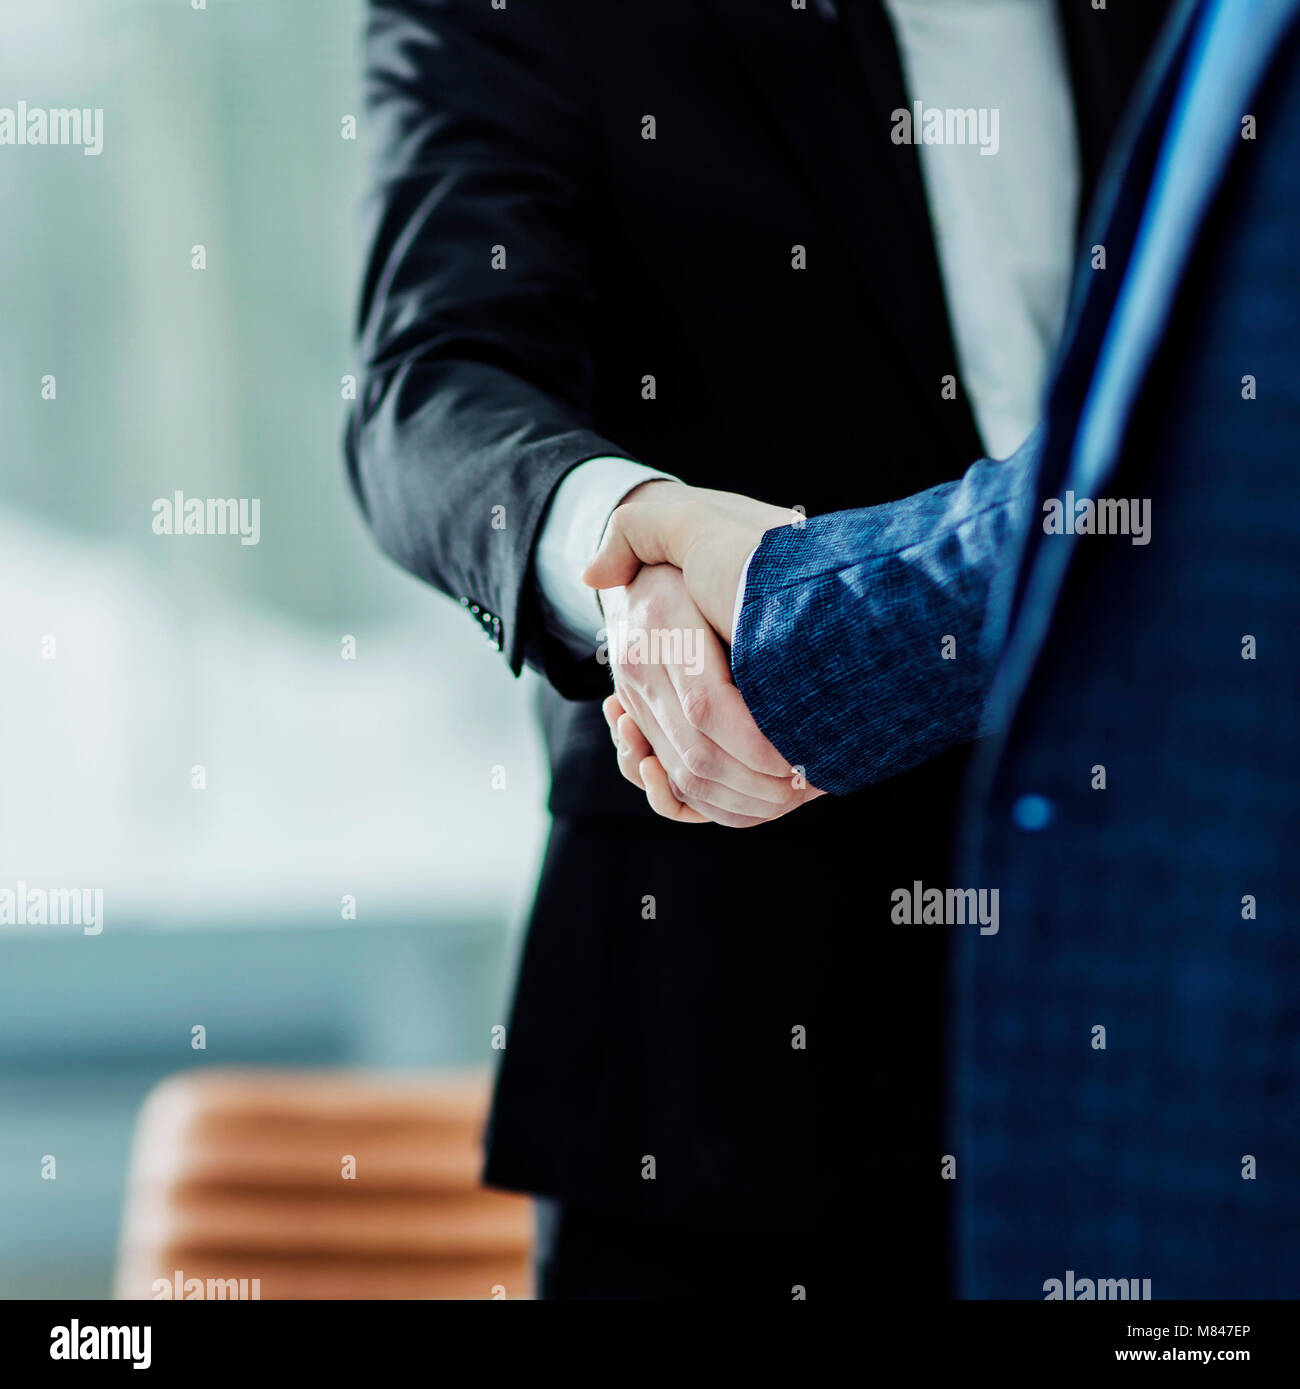 success concept in business - handshake of business partners on the background of the workplace - Stock Image